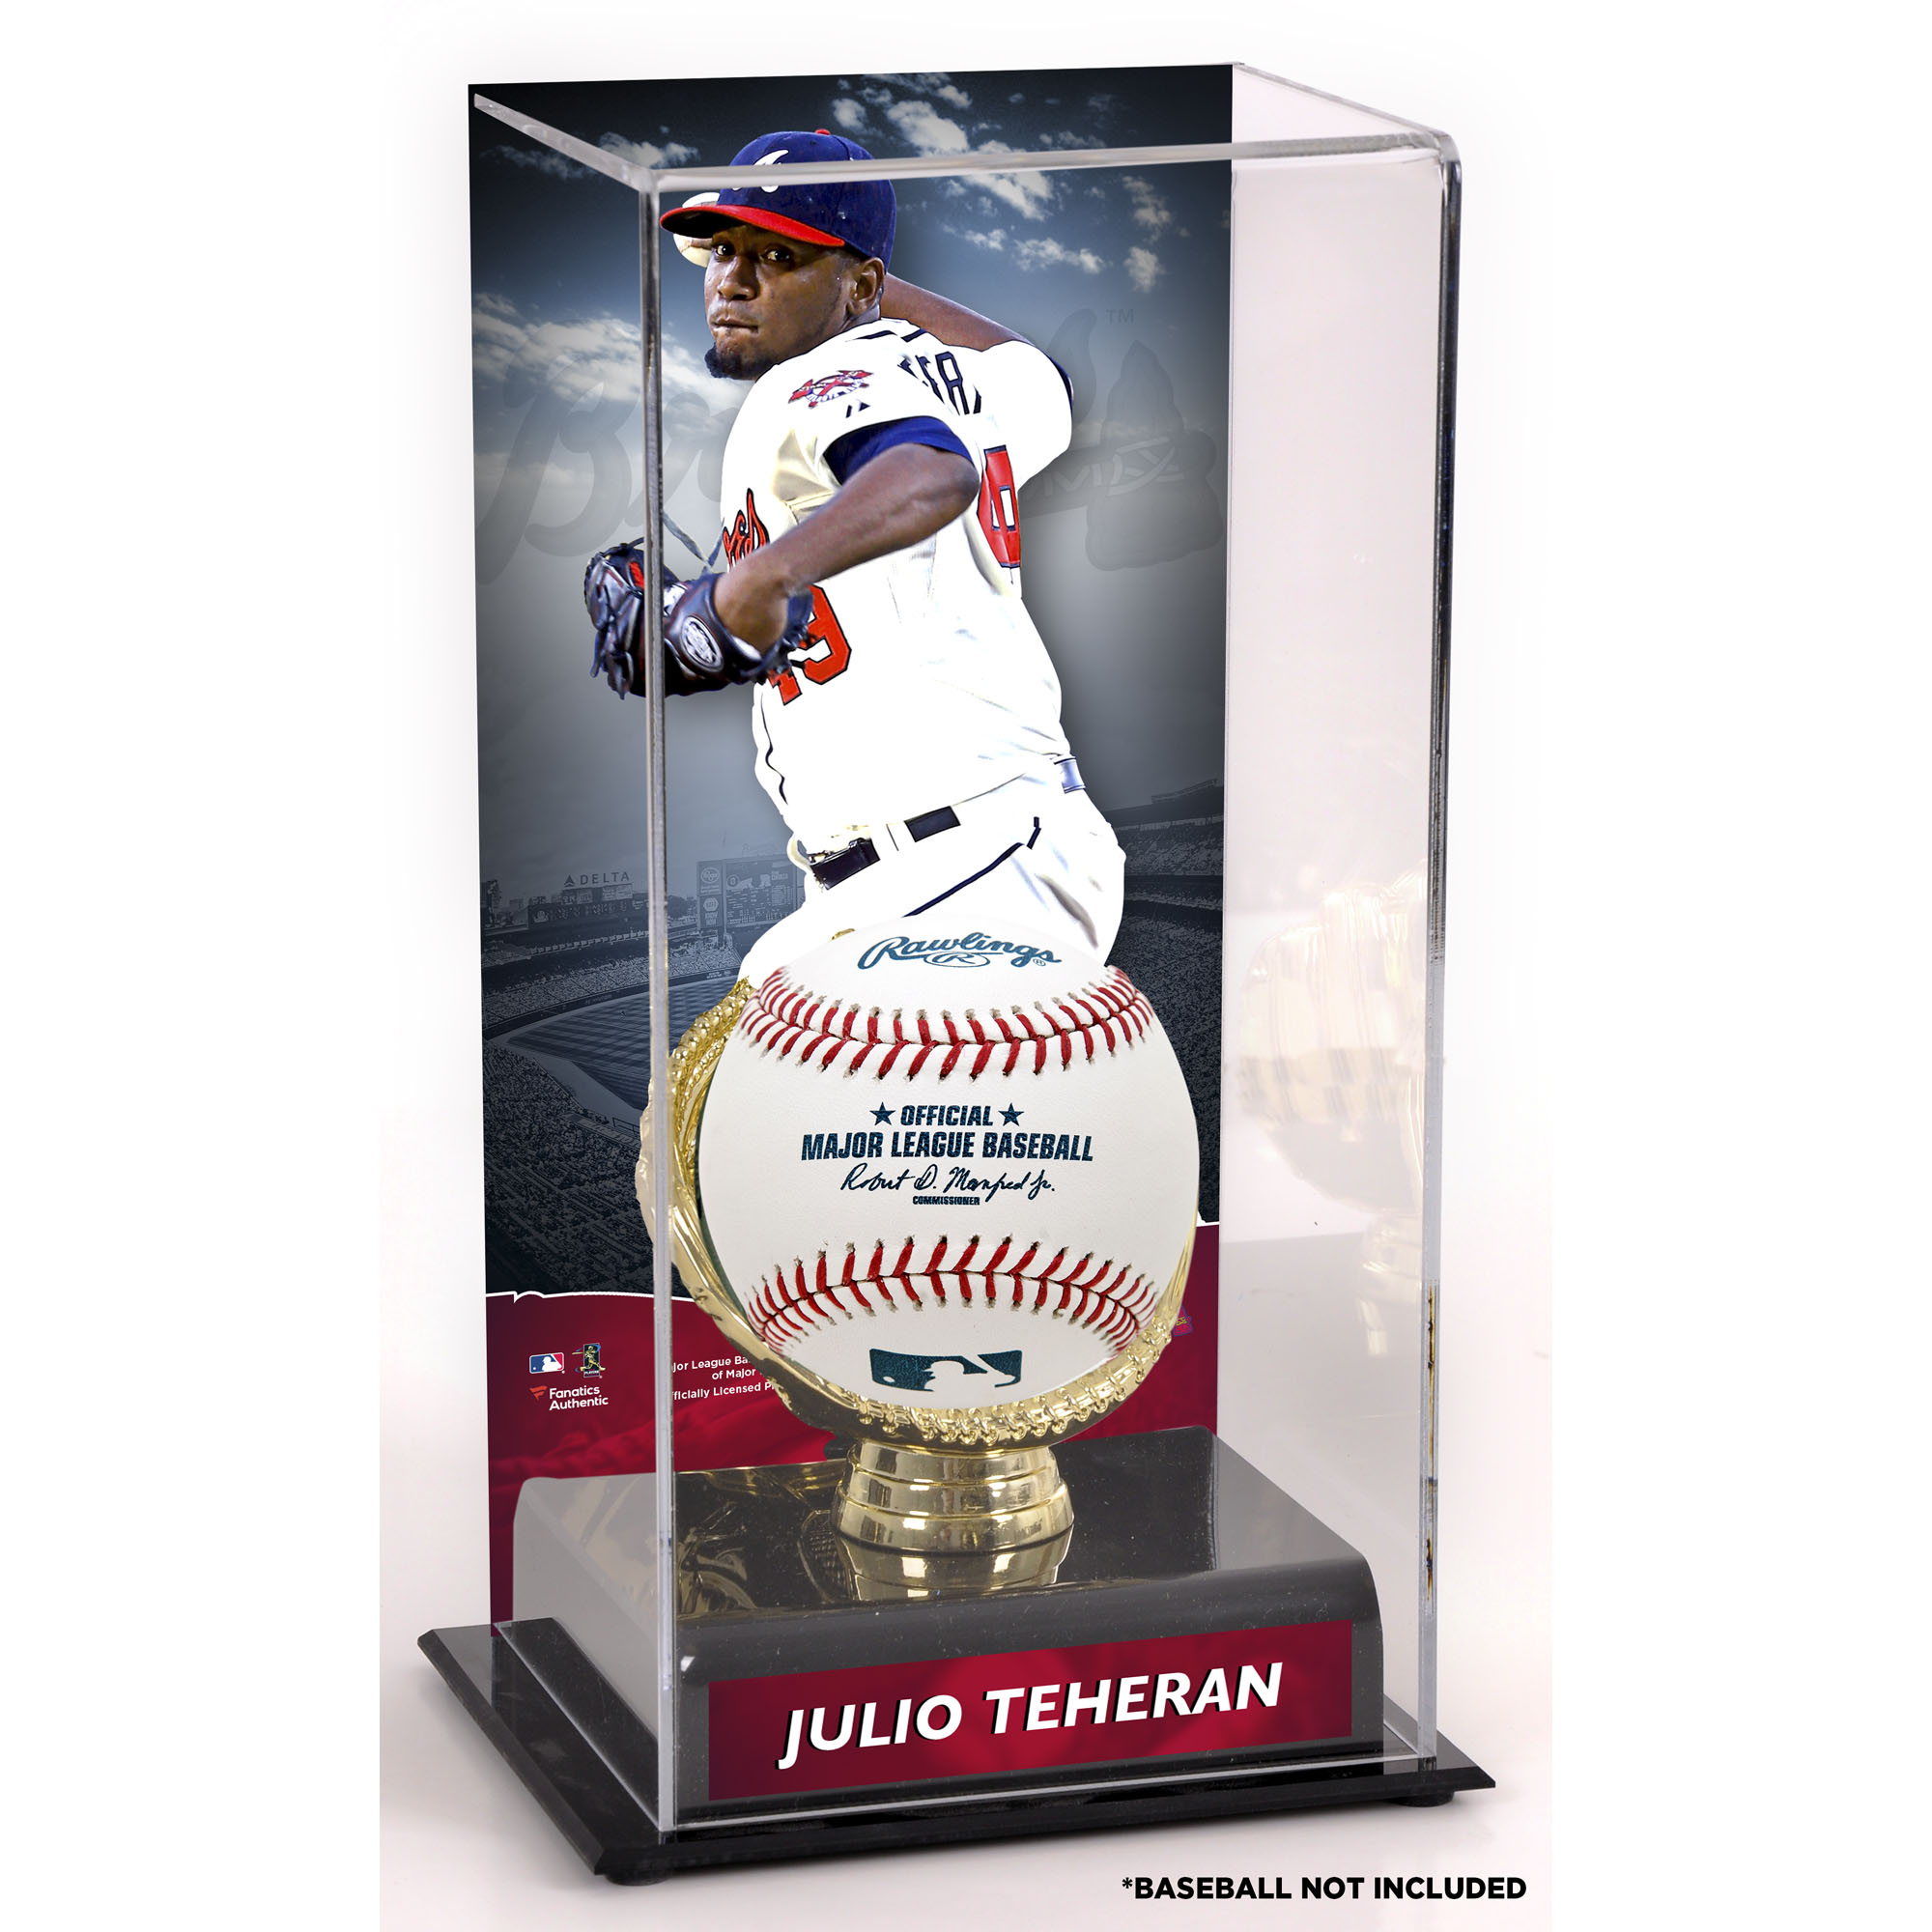 Julio Teheran Atlanta Braves Fanatics Authentic Gold Glove Display Case with Image - No Size